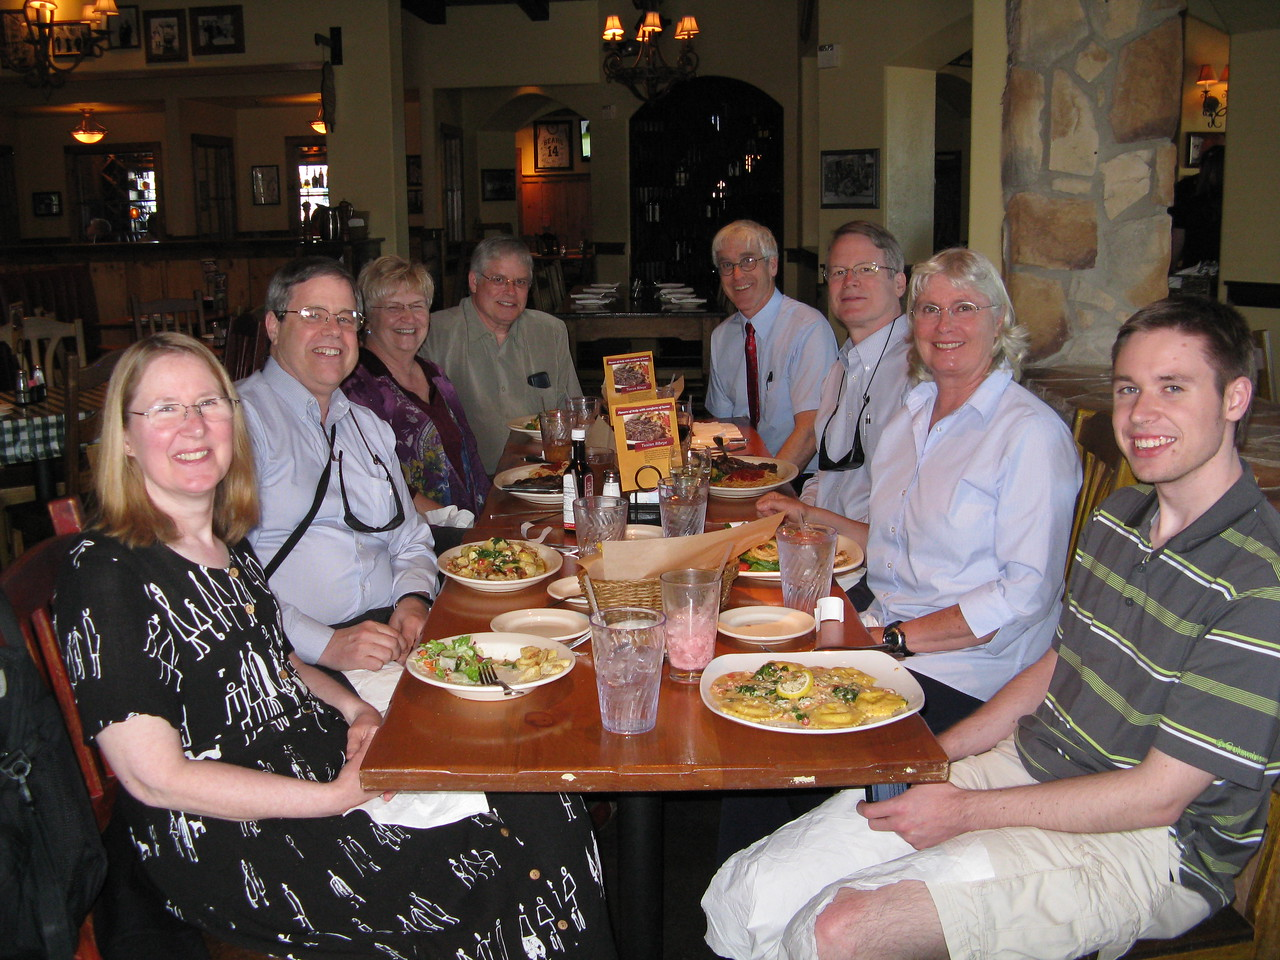 We had dinner at Carino's Italian Restaurant in Greeley shortly before Kevin's graduation.  (L to R)  Mary, Martin, Kathi, Wendell, GLenn, Richard, Connie and Kevin.